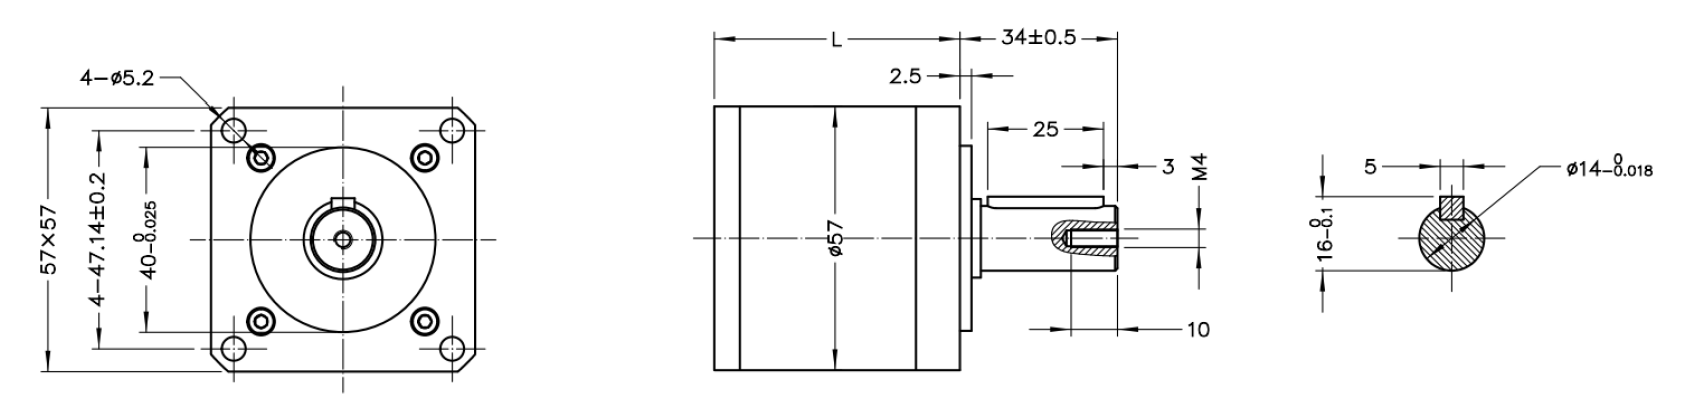 57mm Gearbox Option